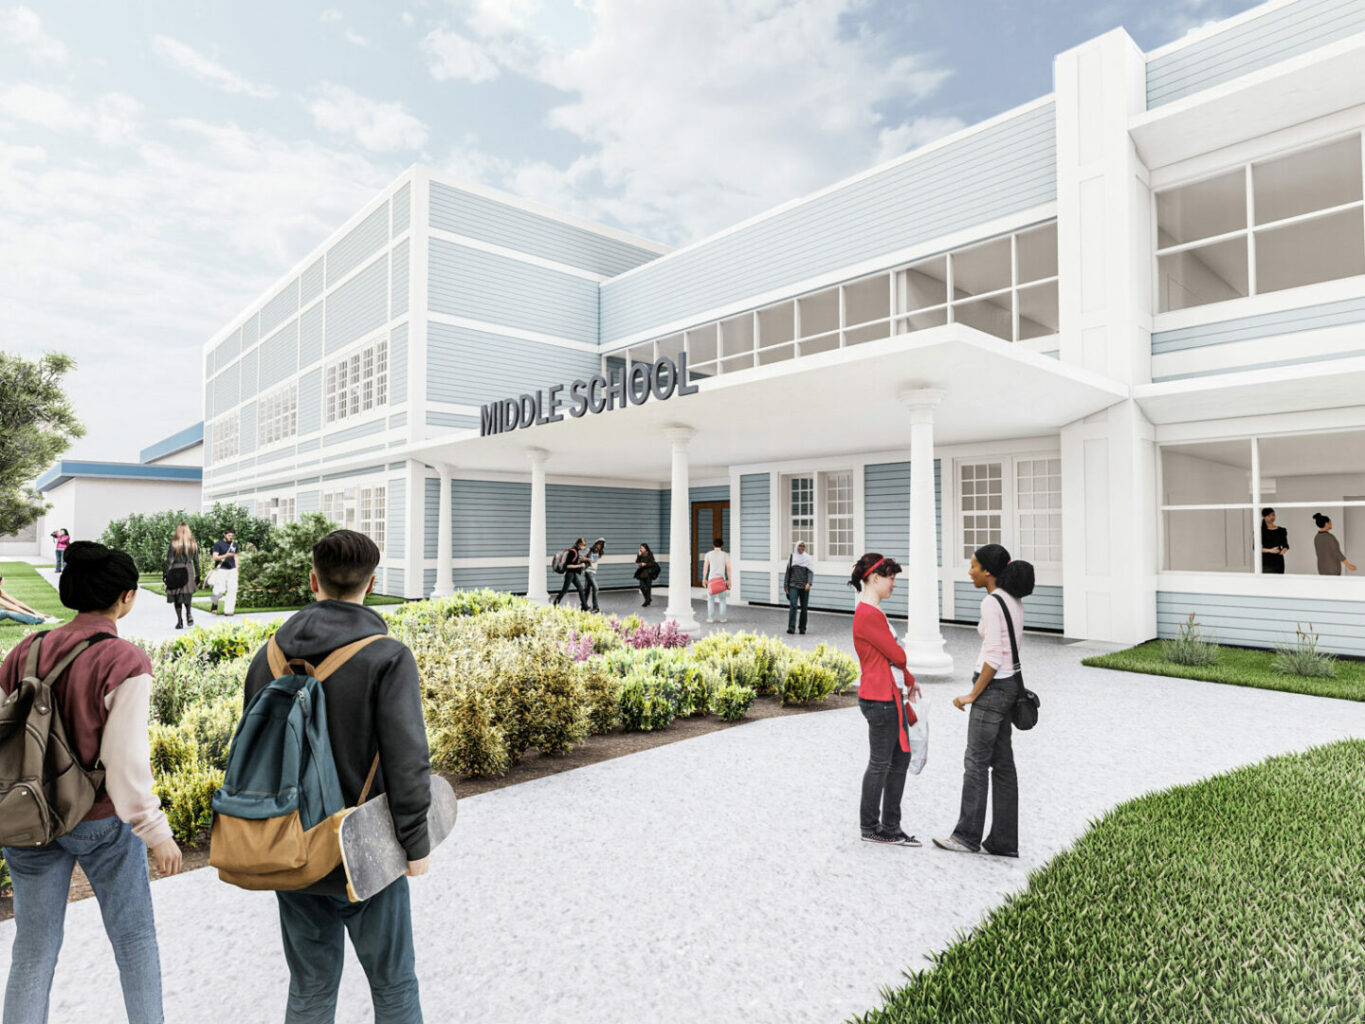 Rendering of upcoming renovation to Seven Hills School Middle School, entry